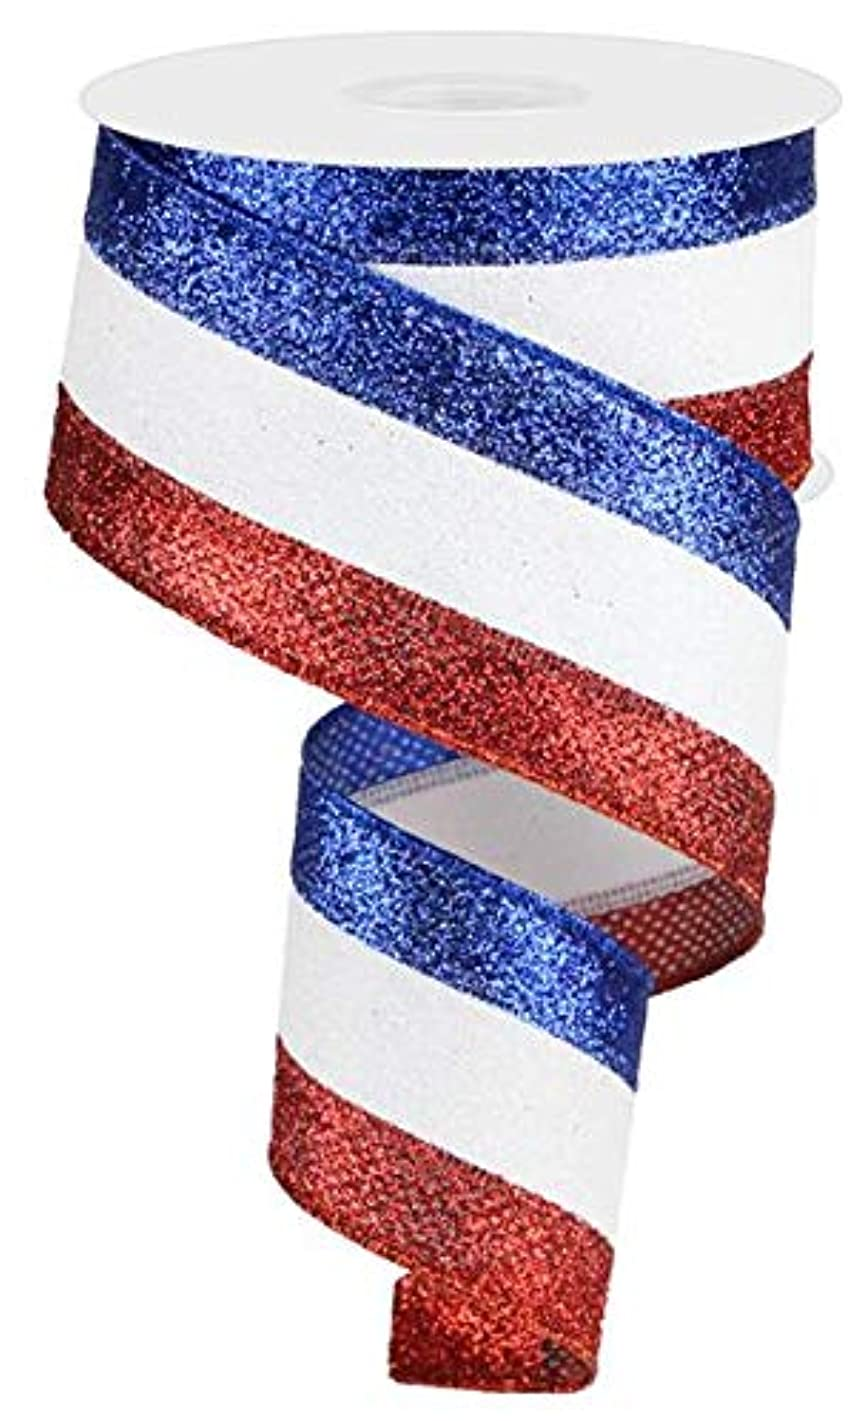 Glitter 3 in 1 Wired Edge Ribbon, 10 Yards (Red, White, Blue, 2.5